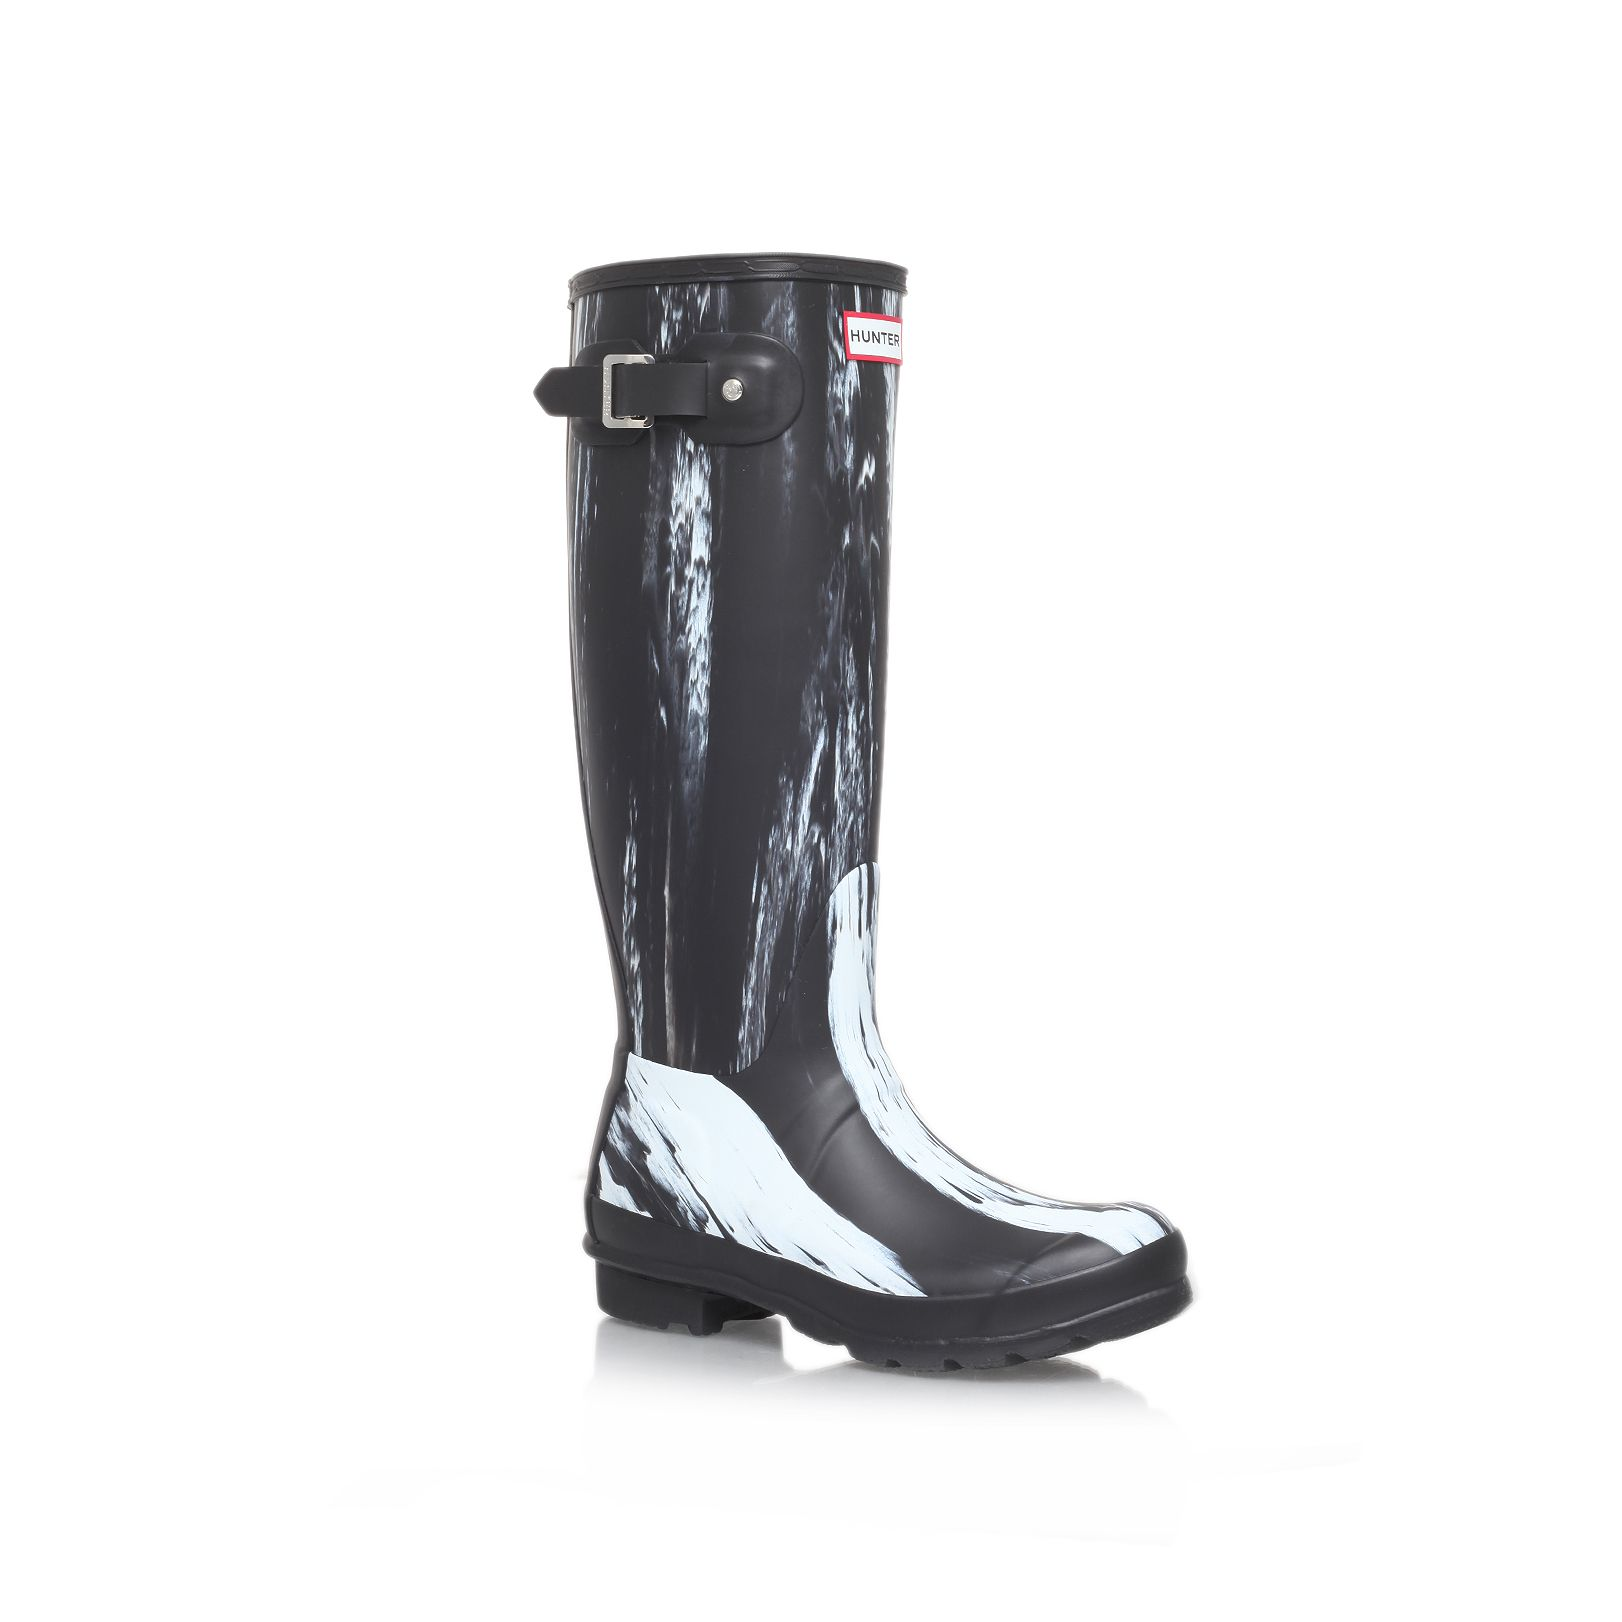 Nighfall wellington boots